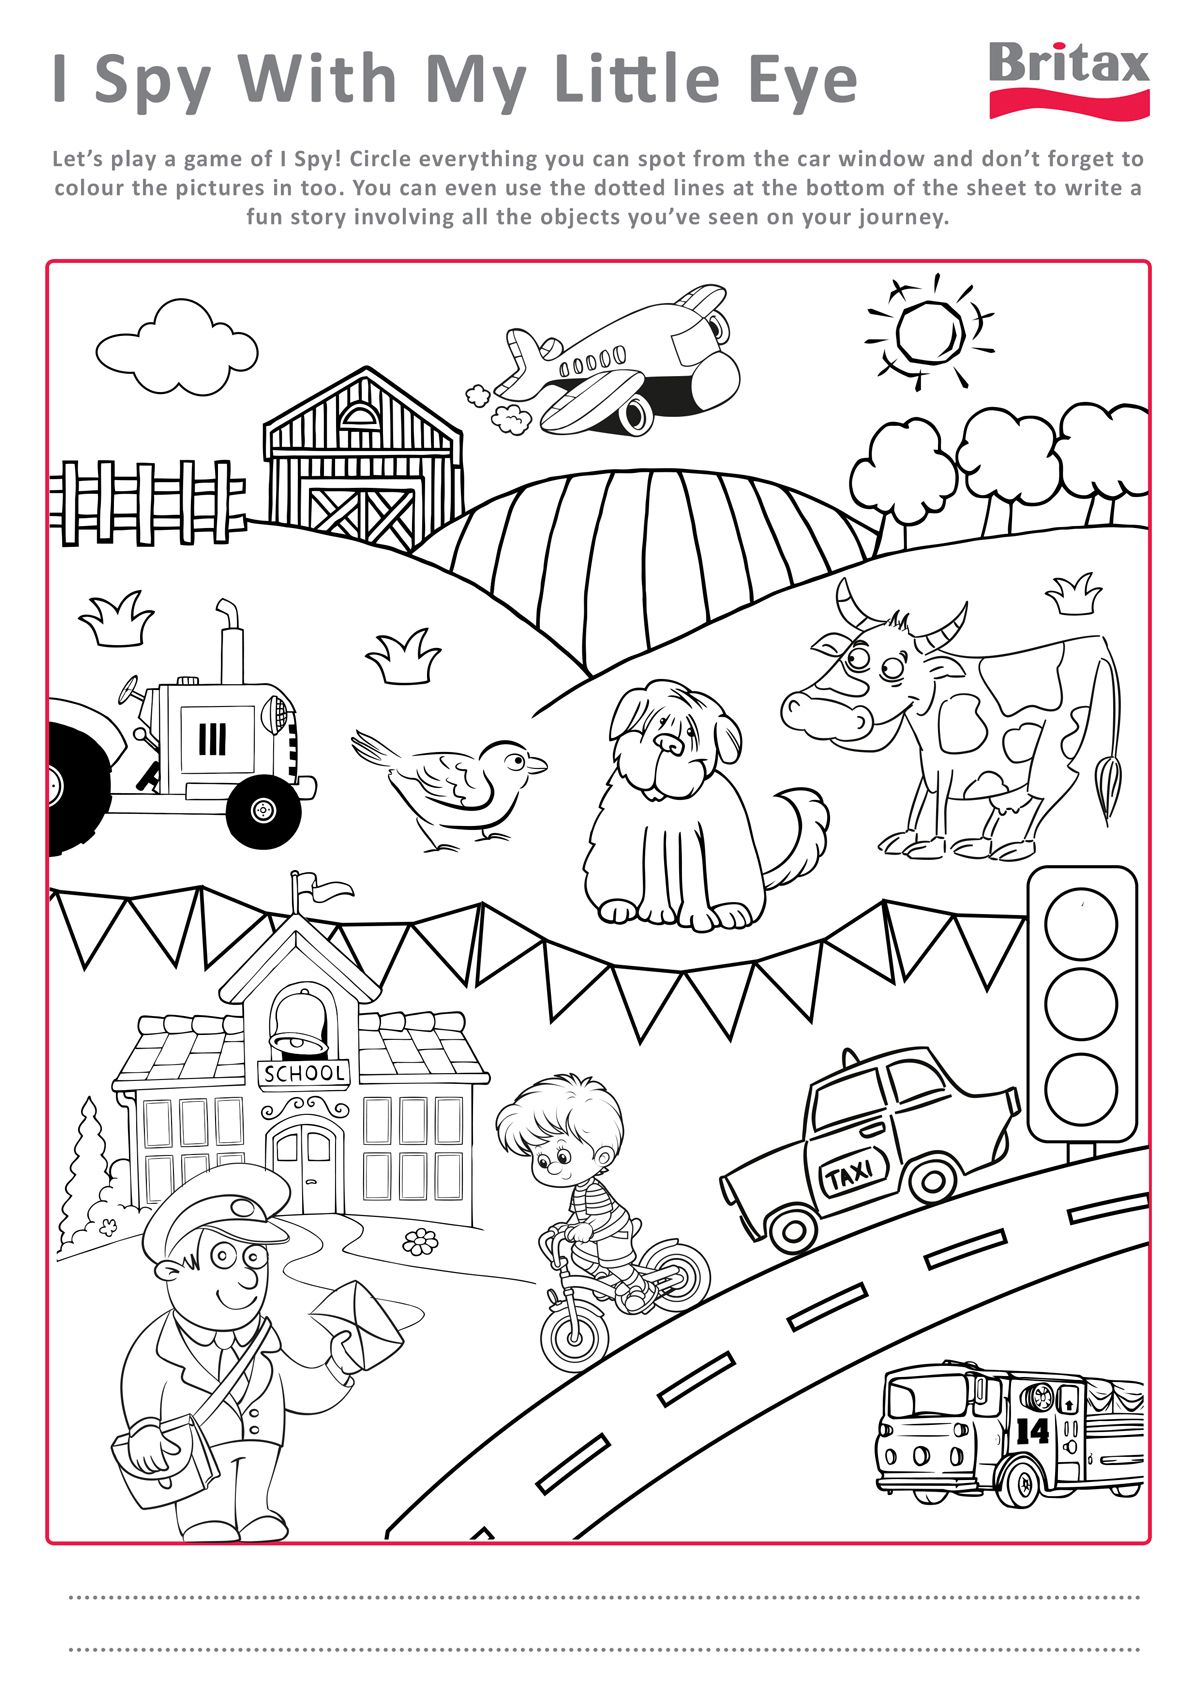 We Love This Printable Colour Sheet From Britax To Entertain Your